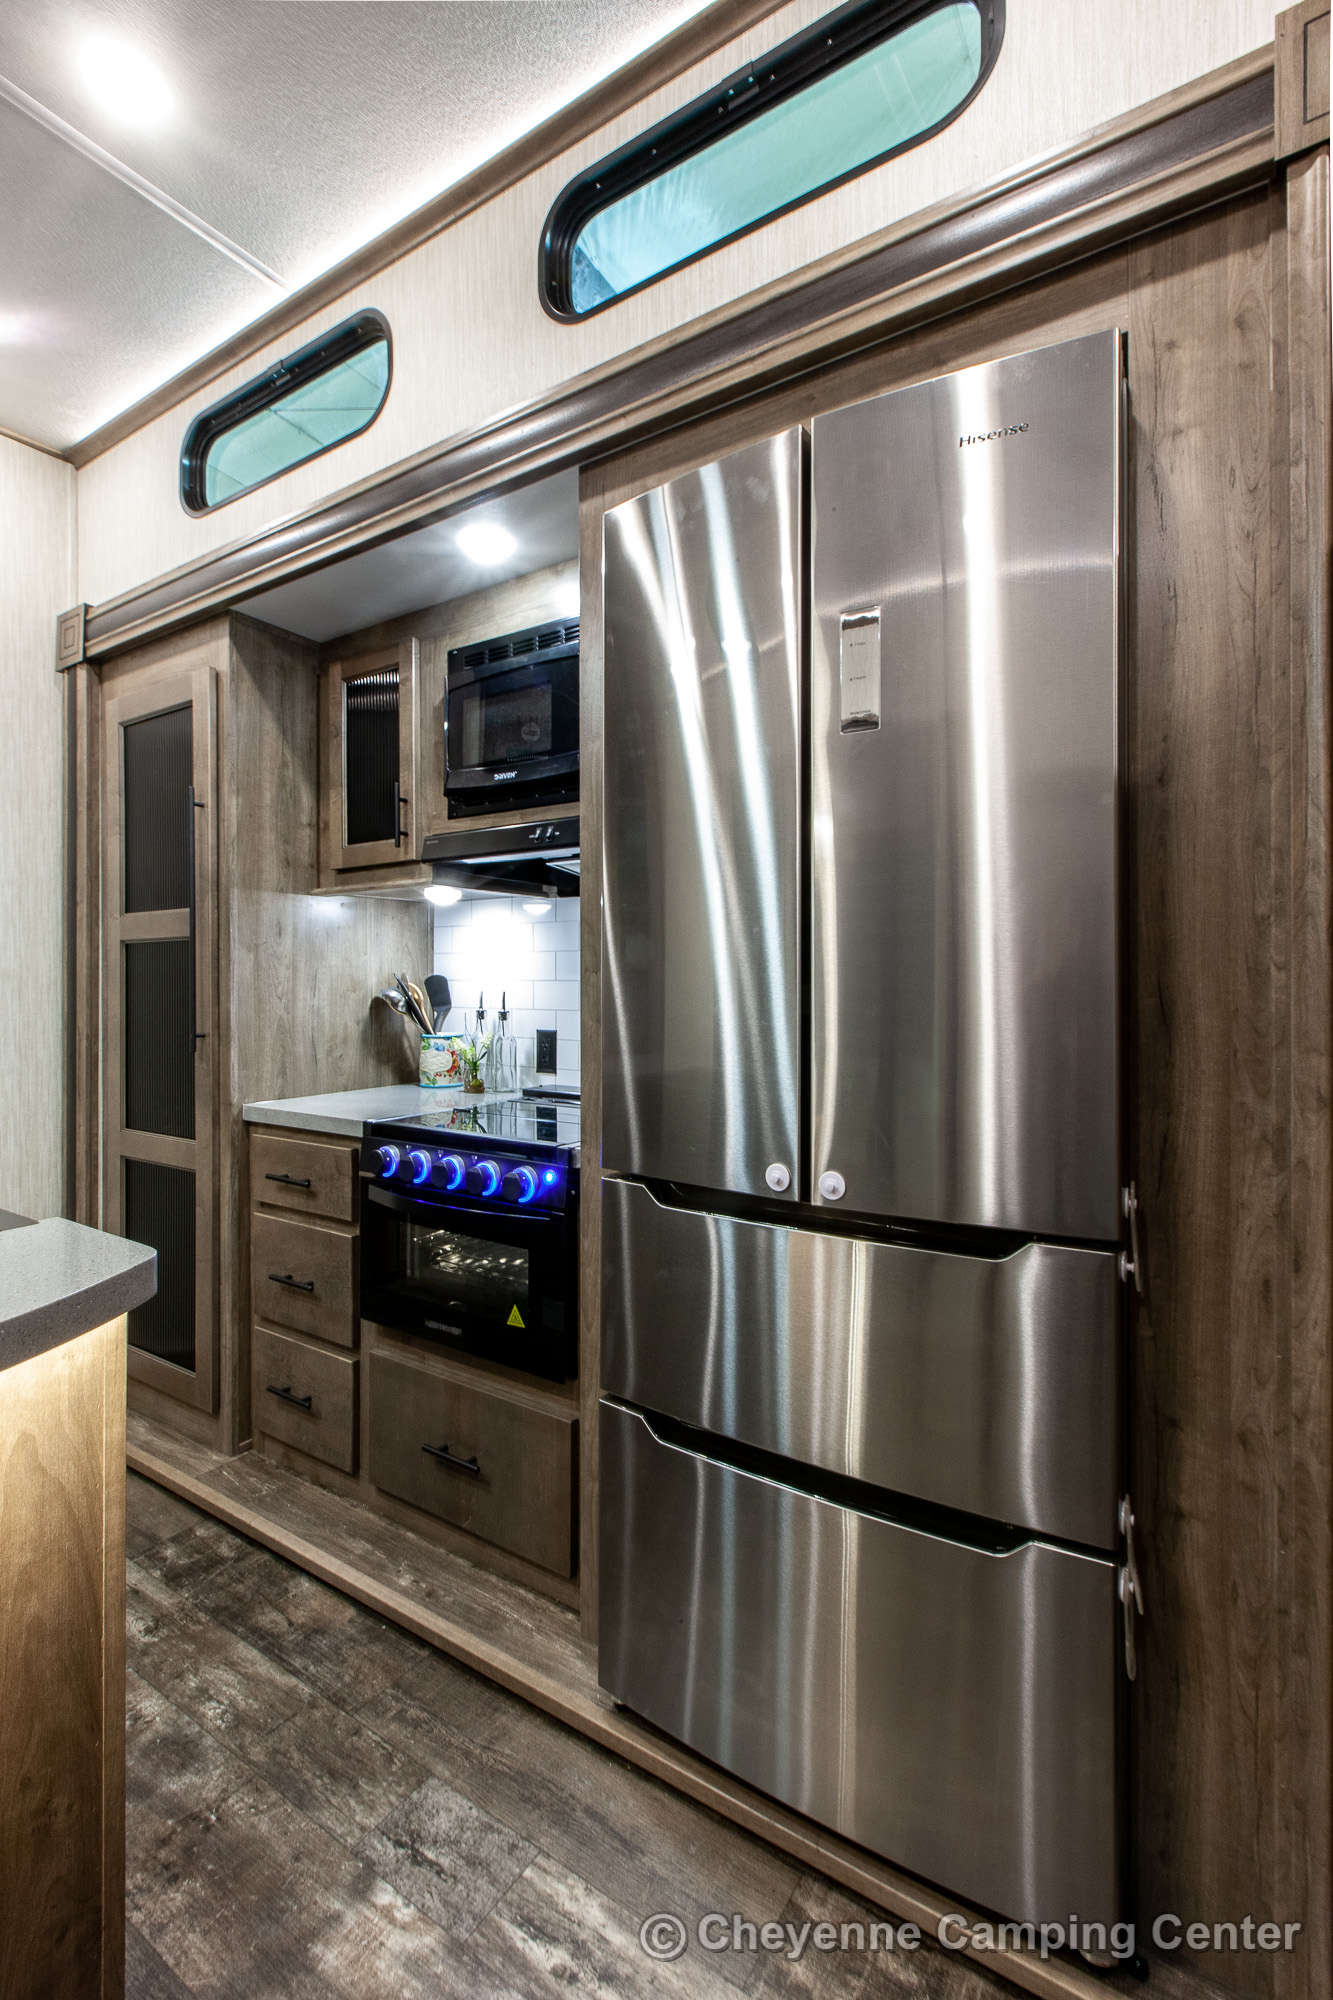 2021 Forest River Sabre Cobalt Edition 37FLH Fifth Wheel Interior Image